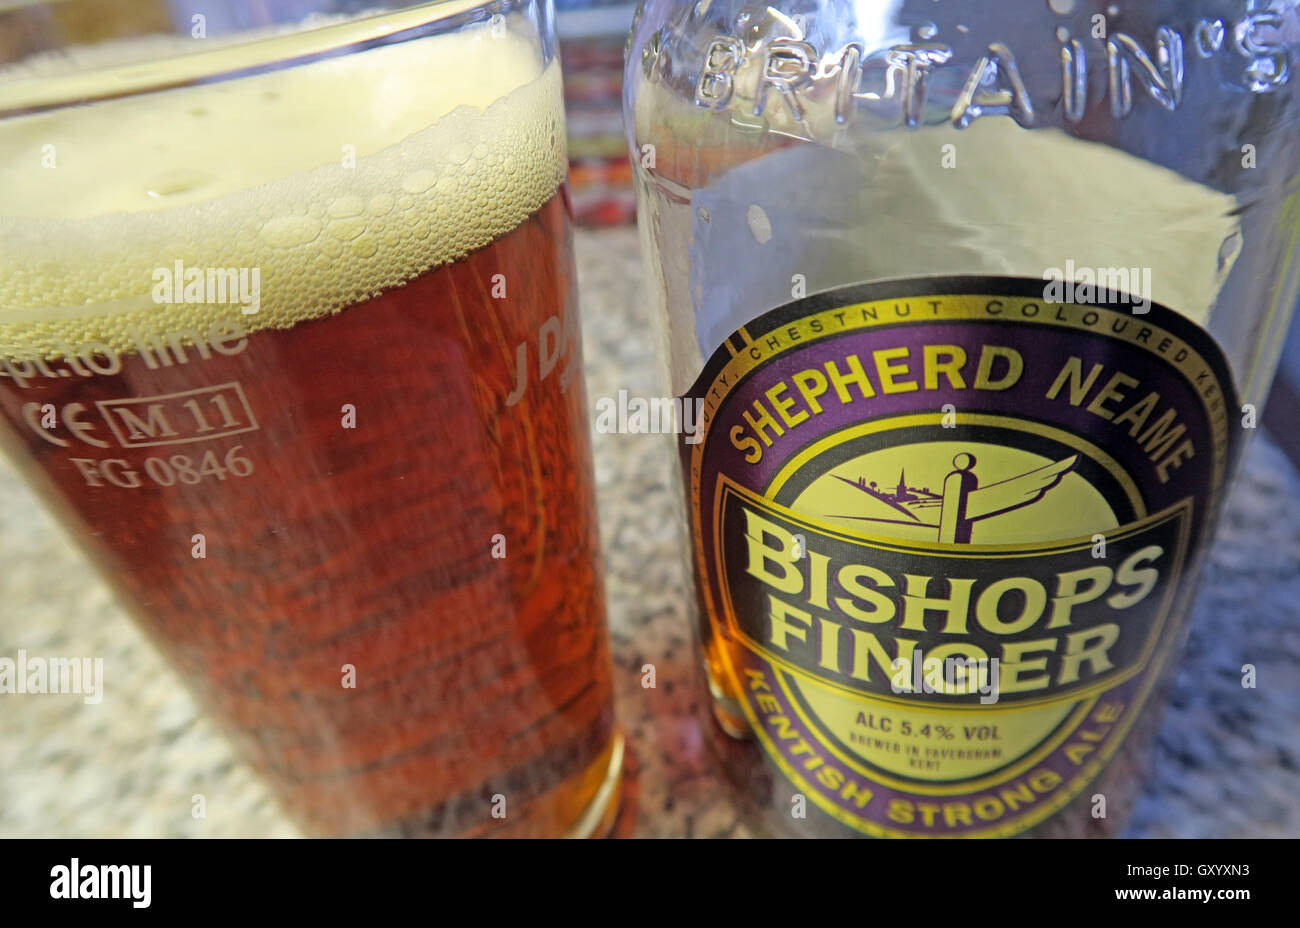 Glass of Bishops Finger Ale Stock Photo